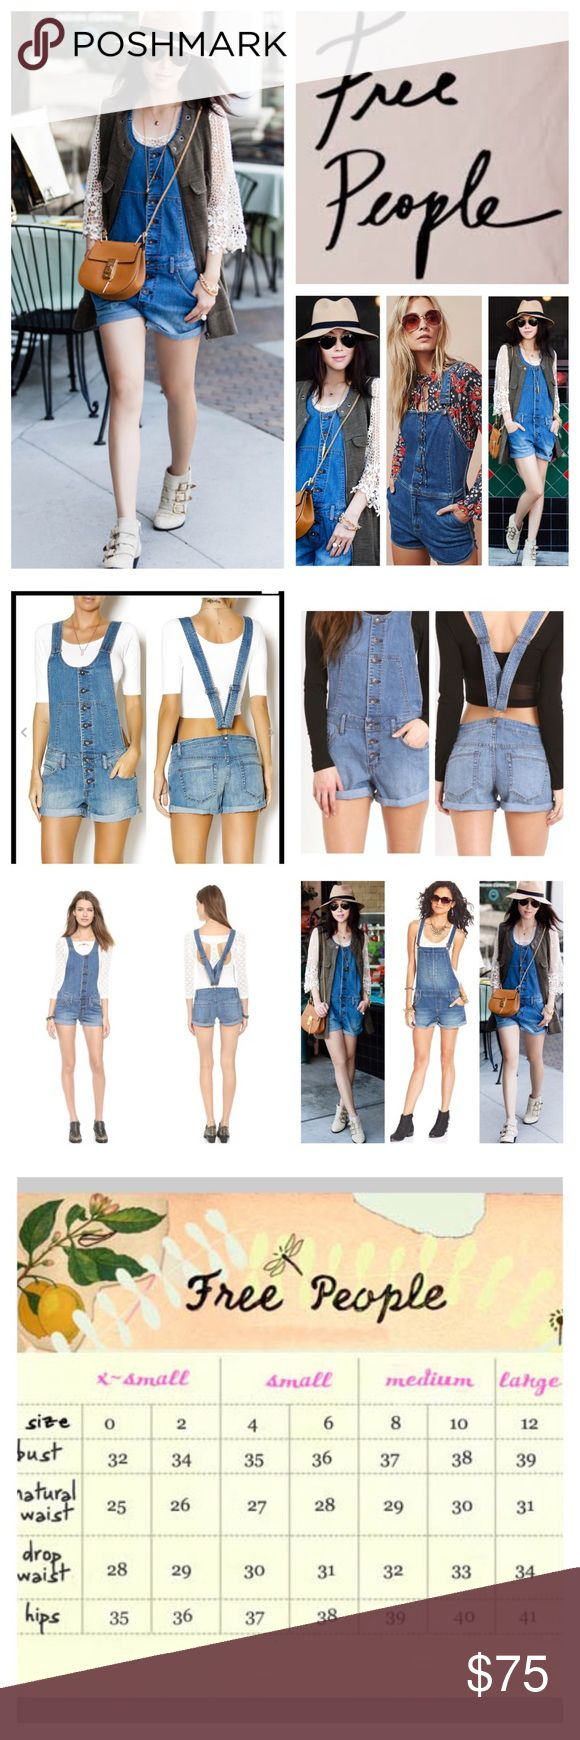 """🆕Free People Button Front Shortalls.  NWOT. 🆕 Free People Button Front Shortalls, 71% cotton, 28% polyester, 1% spandex, machine washable, 37"""" waist, 9"""" front rise, 14"""" back rise, 2.5"""" inseam, 29"""" length from strap maximum to hem, 25"""" leg opening all around, scoop neck, open back, adjustable overalls belt-looped waist, 5-pocket silhouette, cuffed, button front closure, black line on Free People label to prevent return to store, measurements are approx. New without tag, never worn.  NO…"""